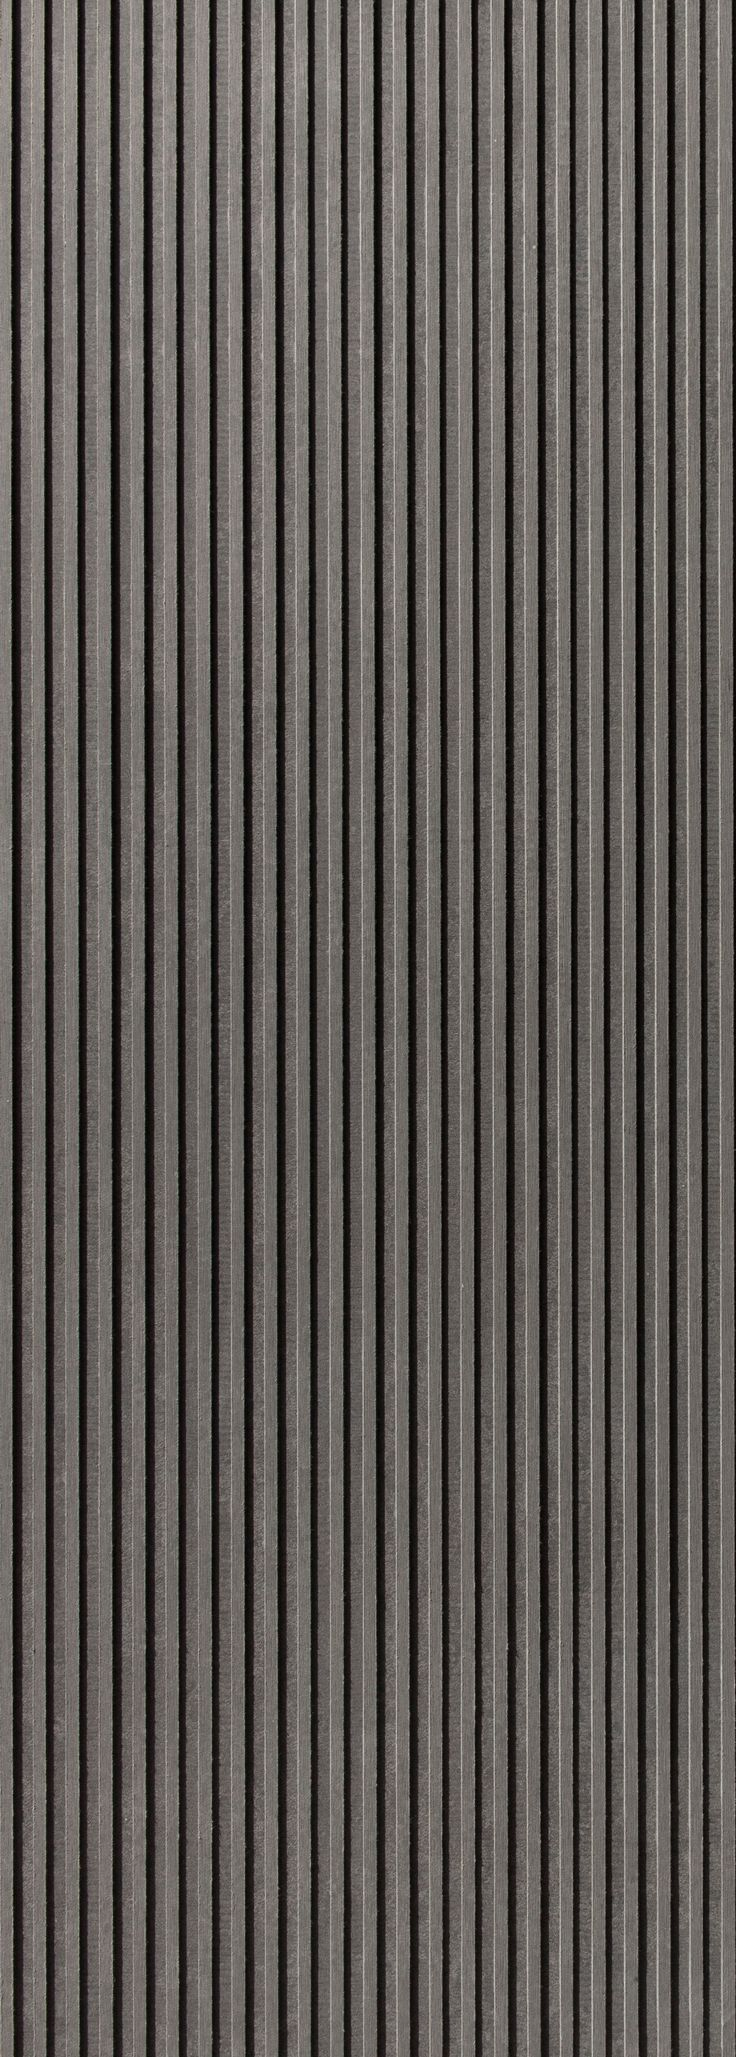 EQUITONE facade materials. New 3D shaped faced material.